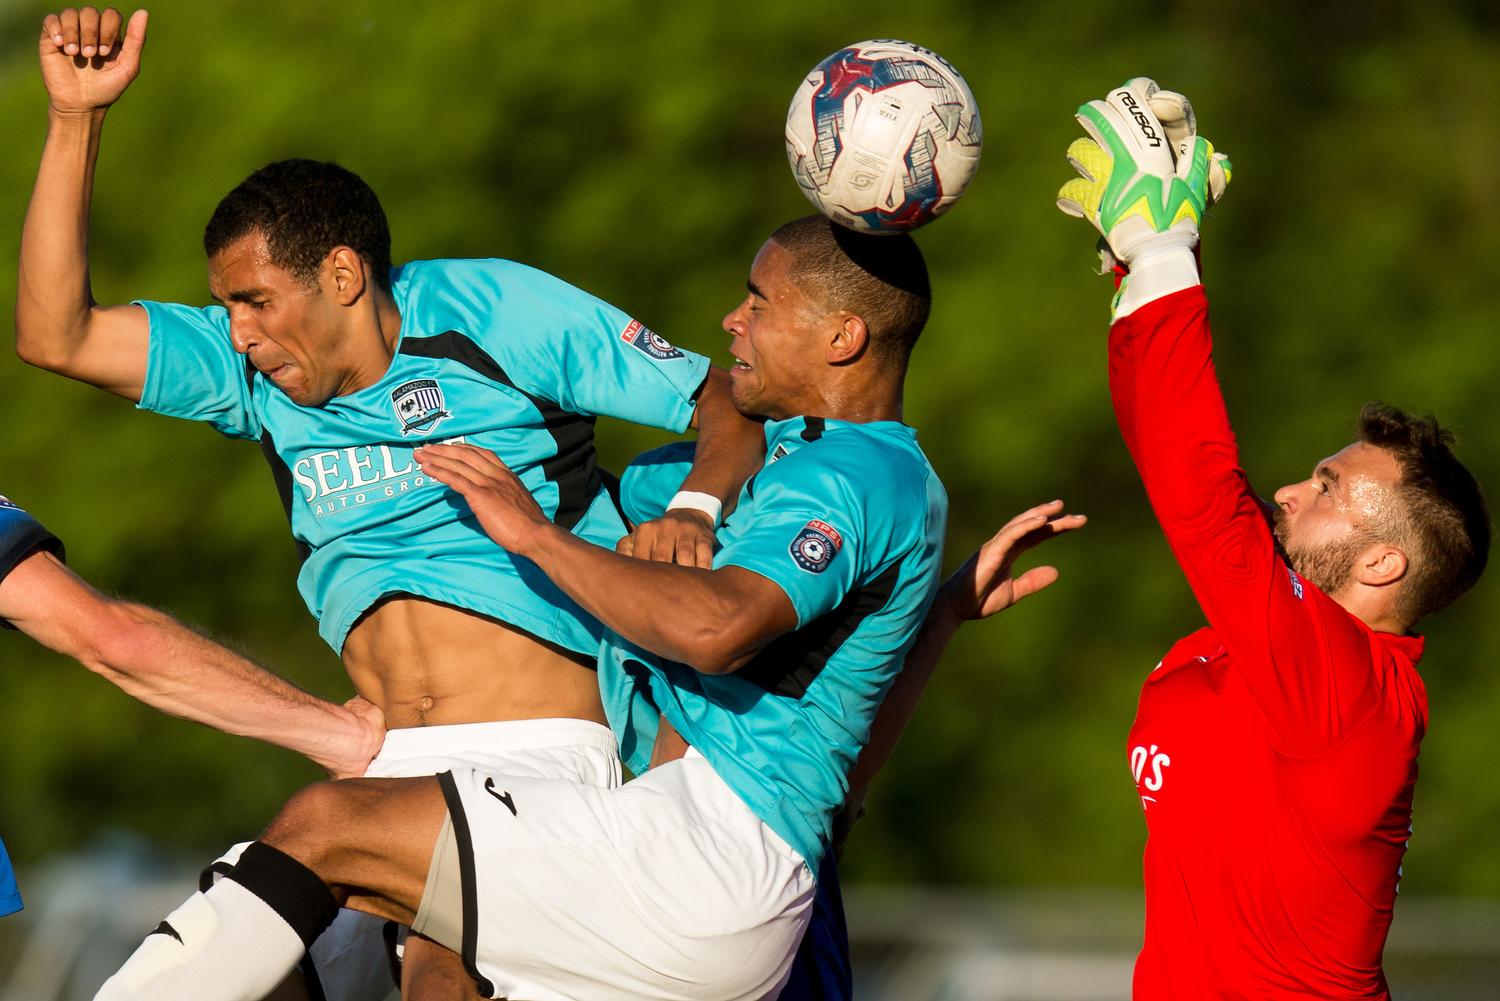 Kalamazoo FC's Corey Werner (14) and Brandon Bye (5), center, attempt to head the ball into the net as Grand Rapids FC's keeper Noah Fazekas (1) blocks it during an National Premier Soccer League match at Mayors' Riverfront Park in Kalamazoo, Mich. on June 5, 2016. Grand Rapids defeated Kalamazoo 2-0.